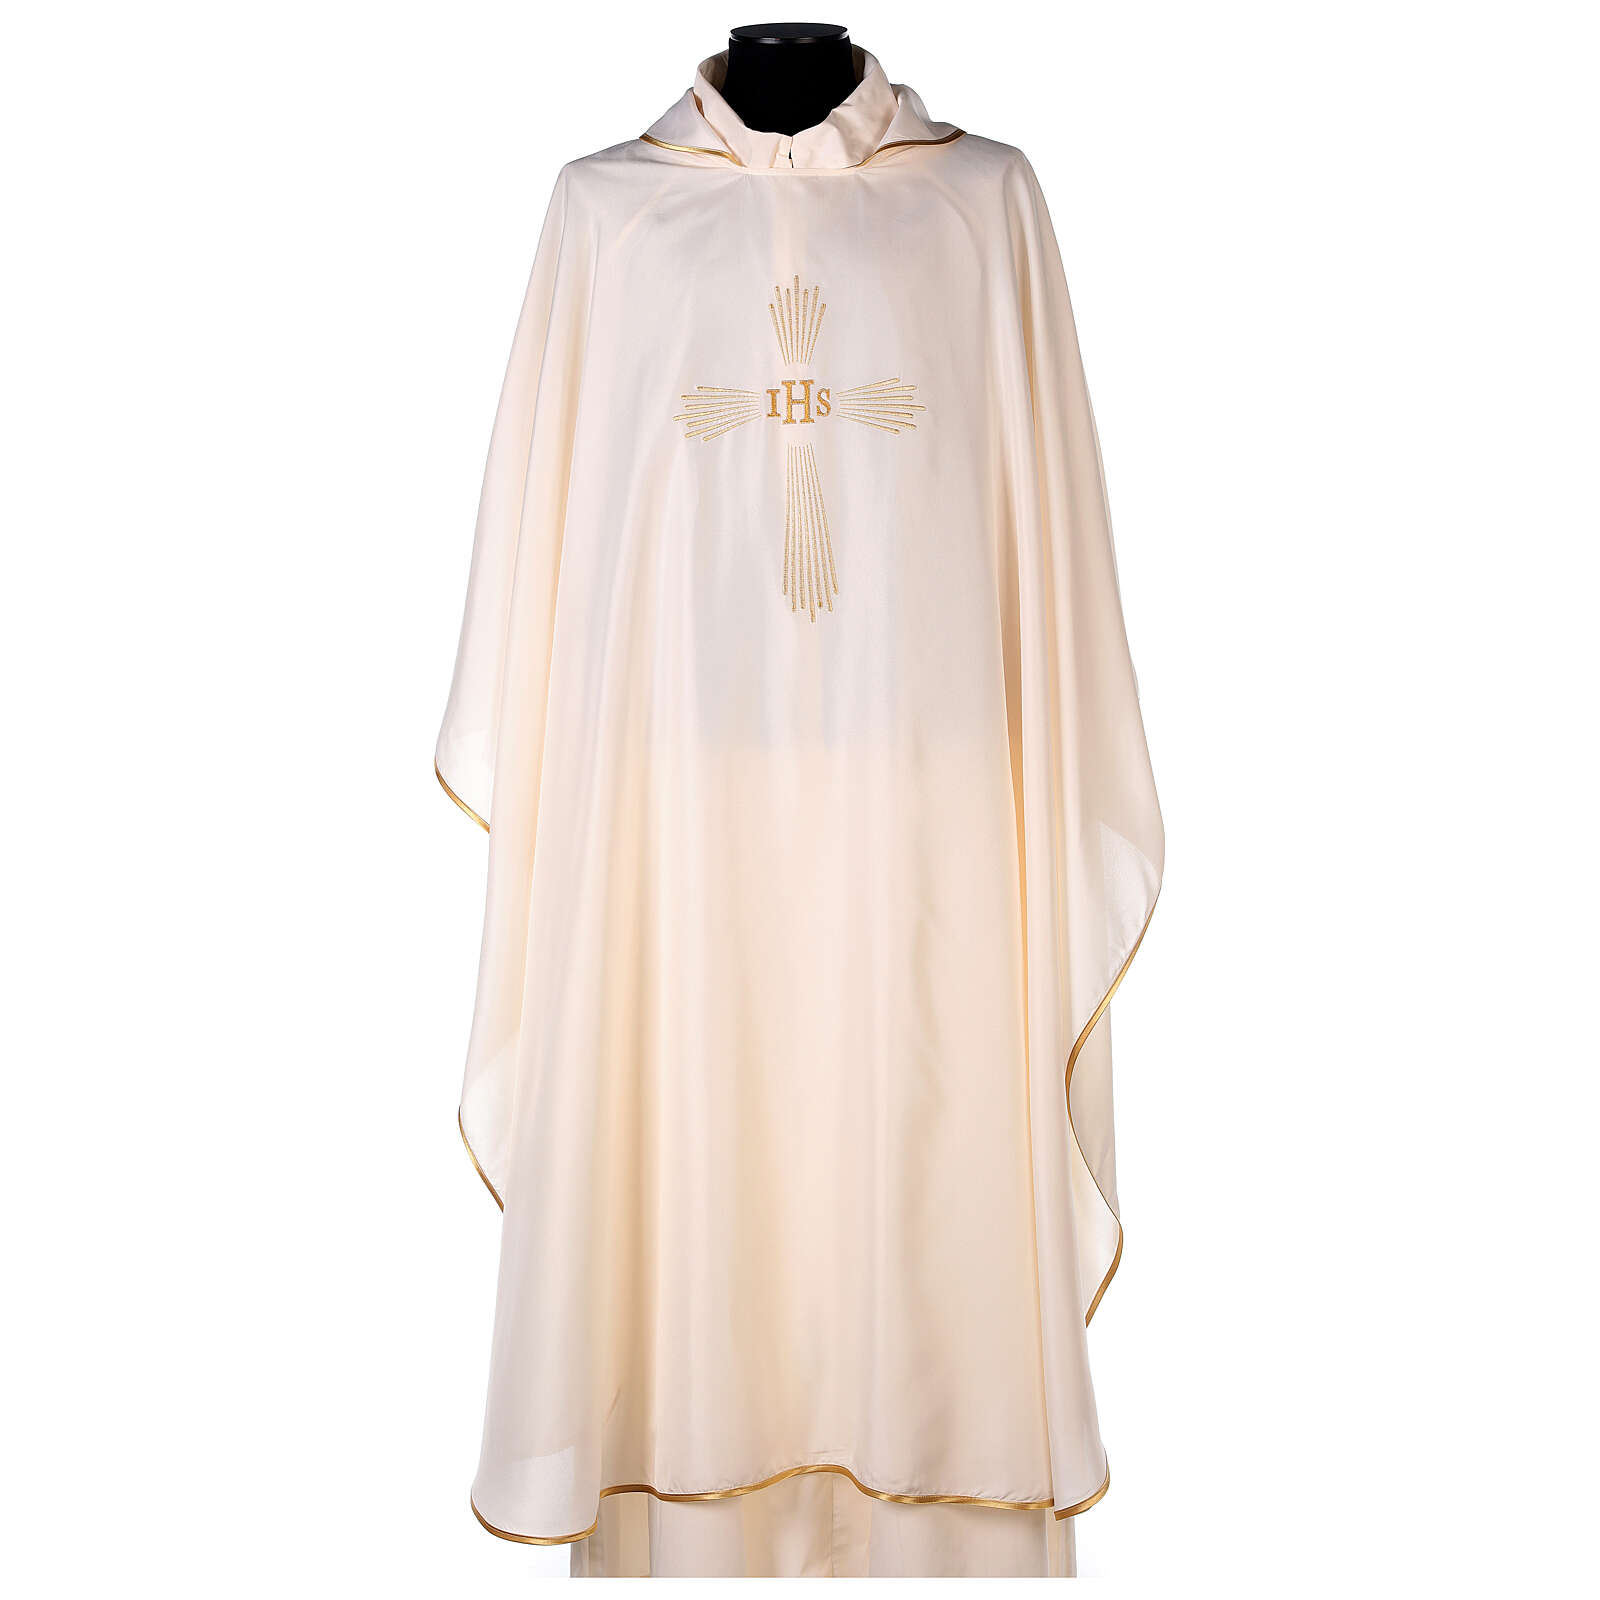 Ultralight Chasuble 100% polyester 4 colors IHS cross rays OFFER 4